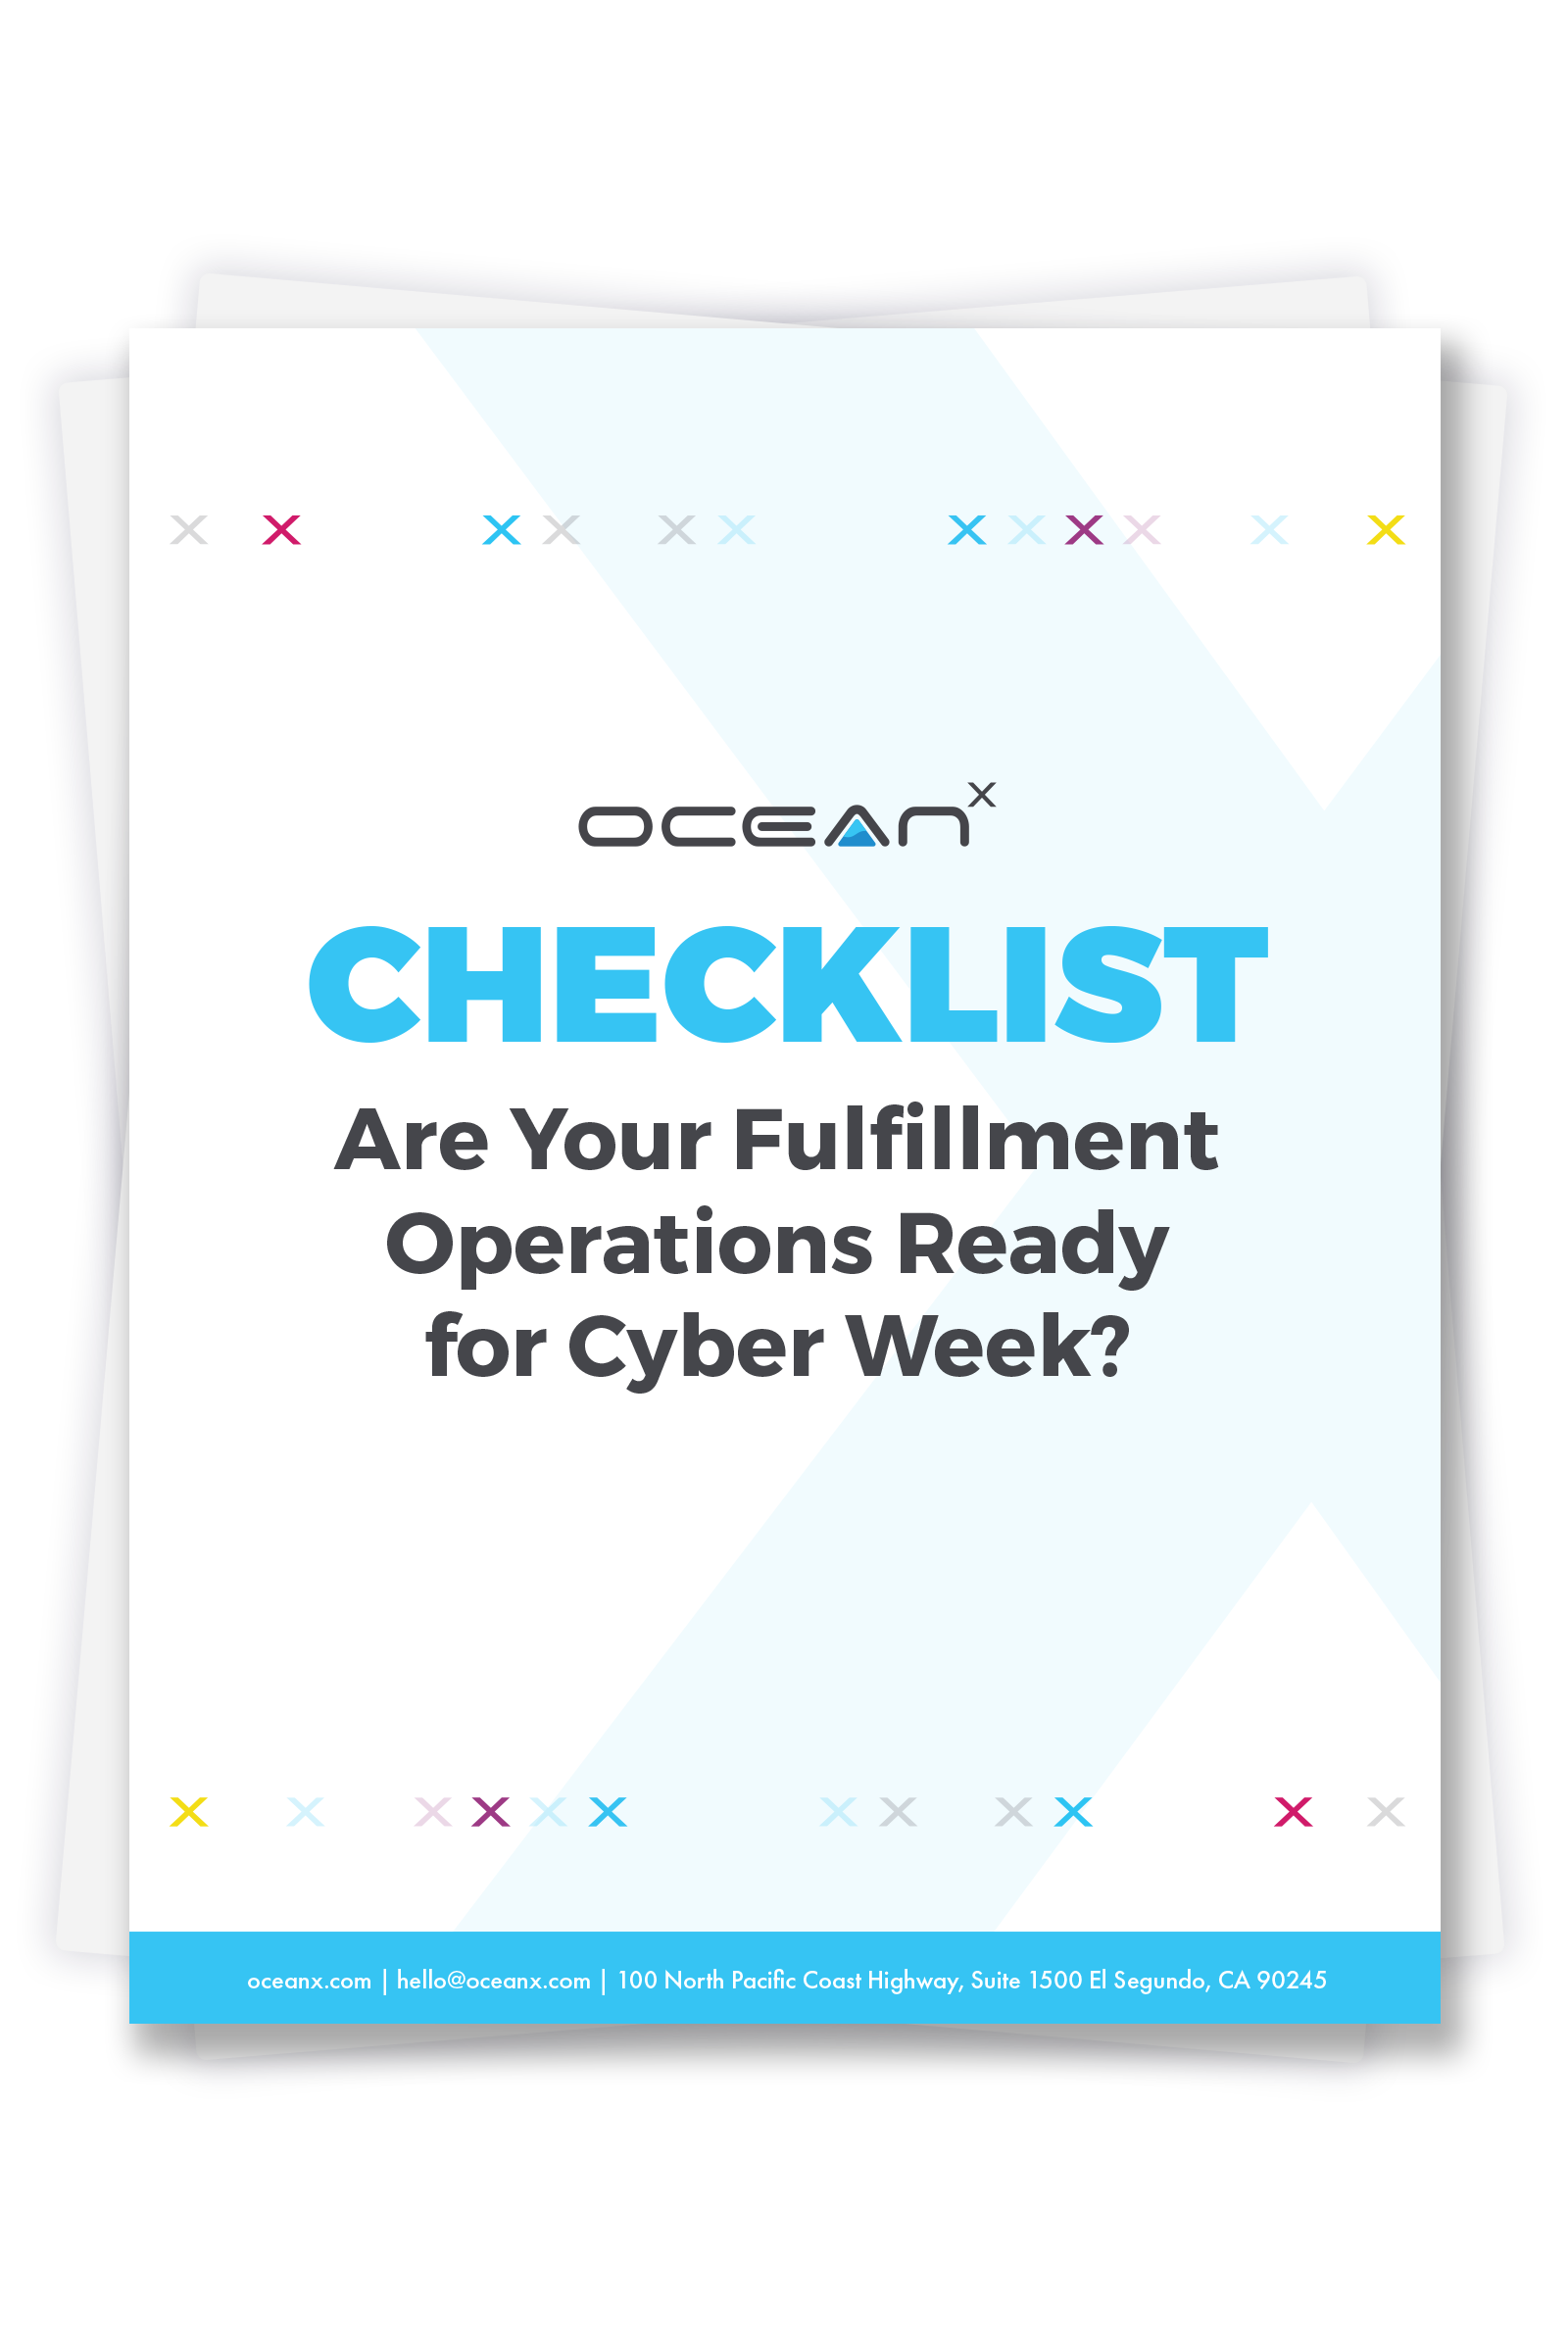 1138642_Case Study _ Resource _ PDF Cover Image (Are Your Fulfillment Operations Ready for Cyber Week_ A Checklist)_01_V2_081021